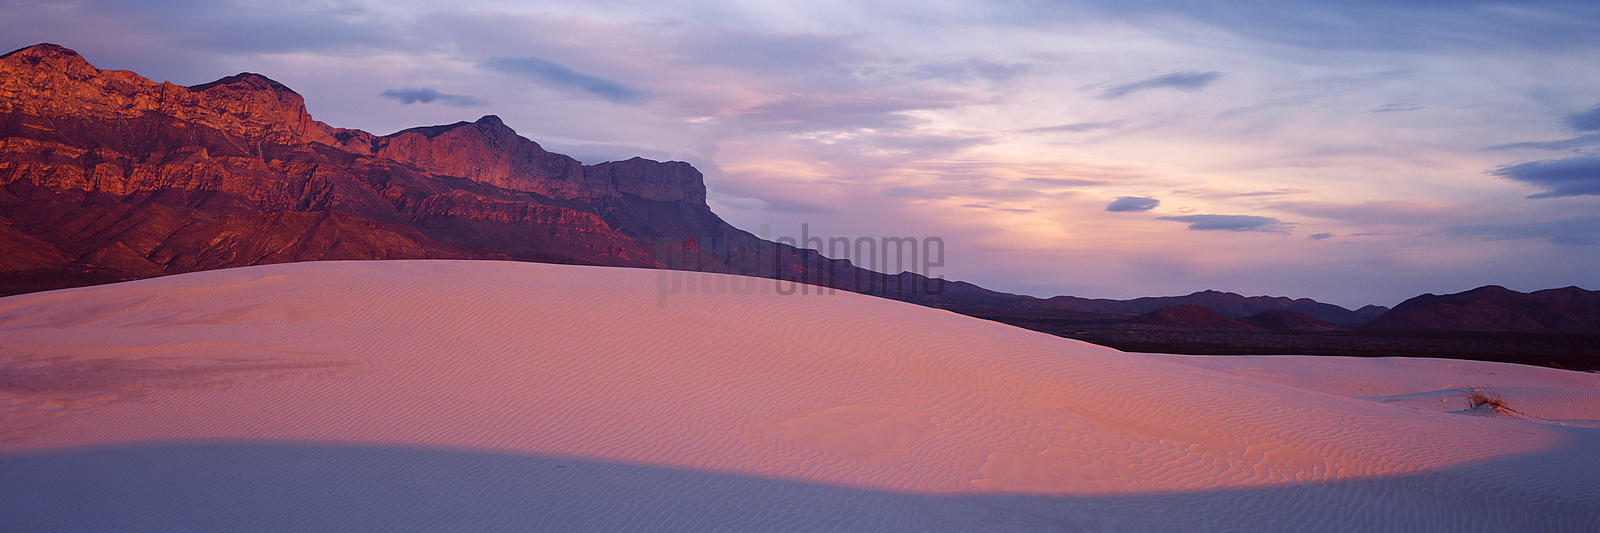 Salt Basin Dunes and Guadalupe Mountains